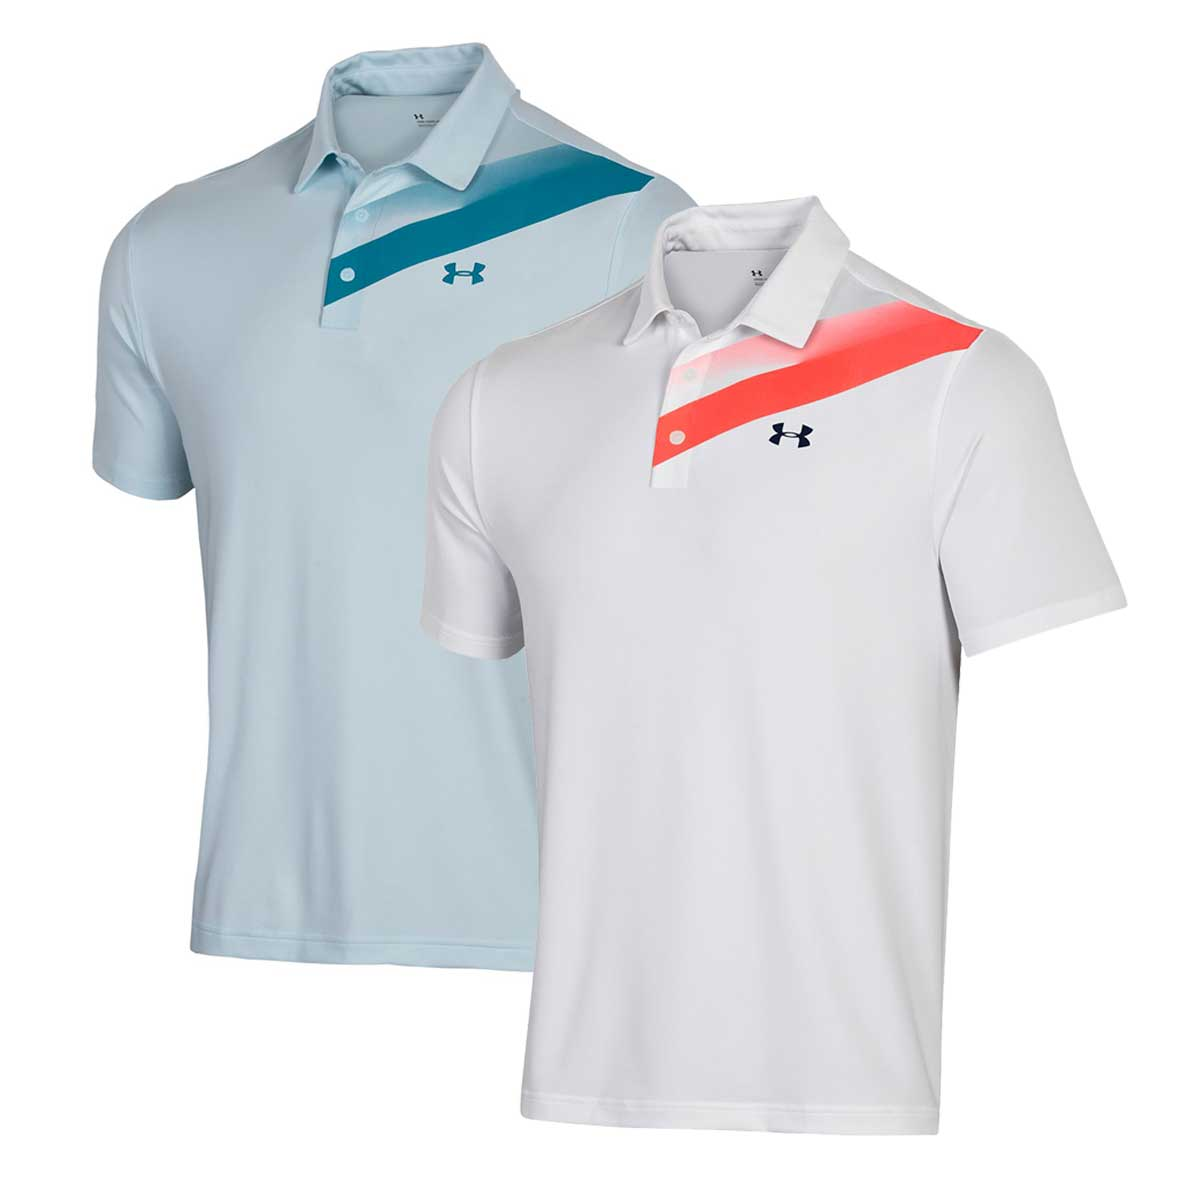 Under Armour Men's Playoff 2.0 Slice Graphic Polo